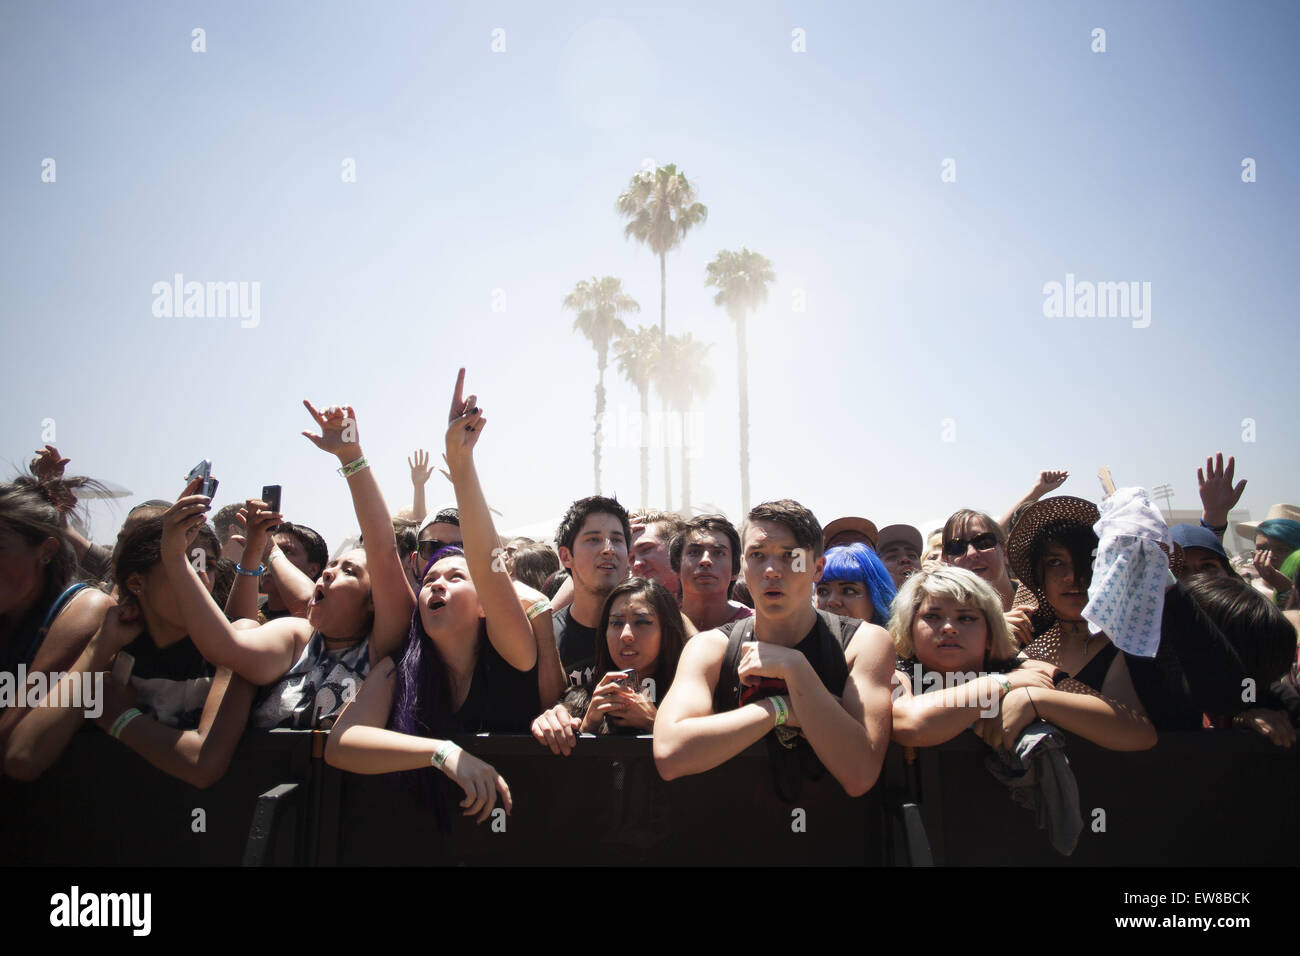 Pomona, California, USA. June 19th, 2015. The crowd watches as the band Beartooth performs on the Shark stage during - Stock Image